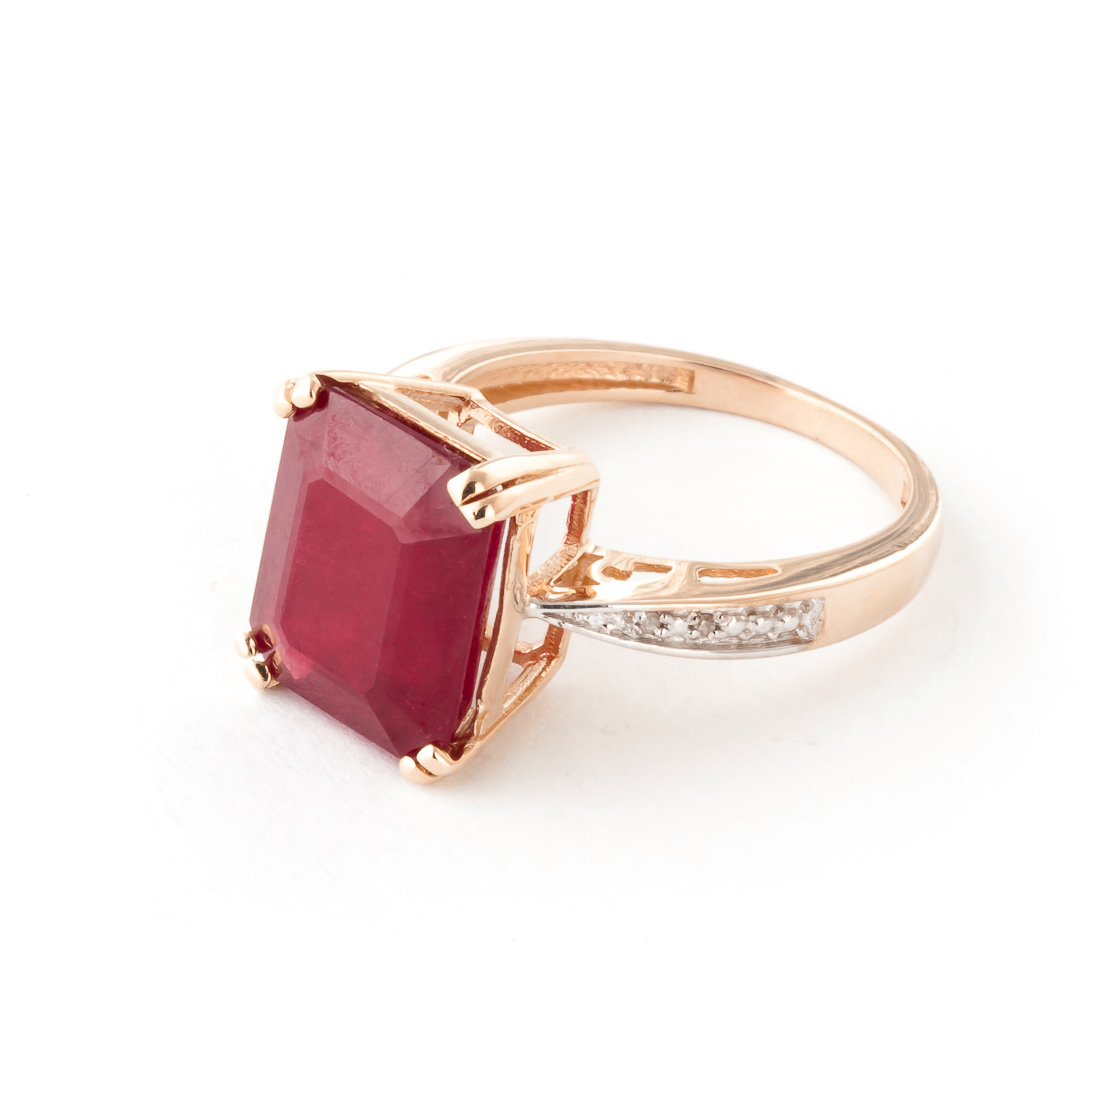 Octagon Cut Ruby Ring 7.27 ctw in 9ct Rose Gold